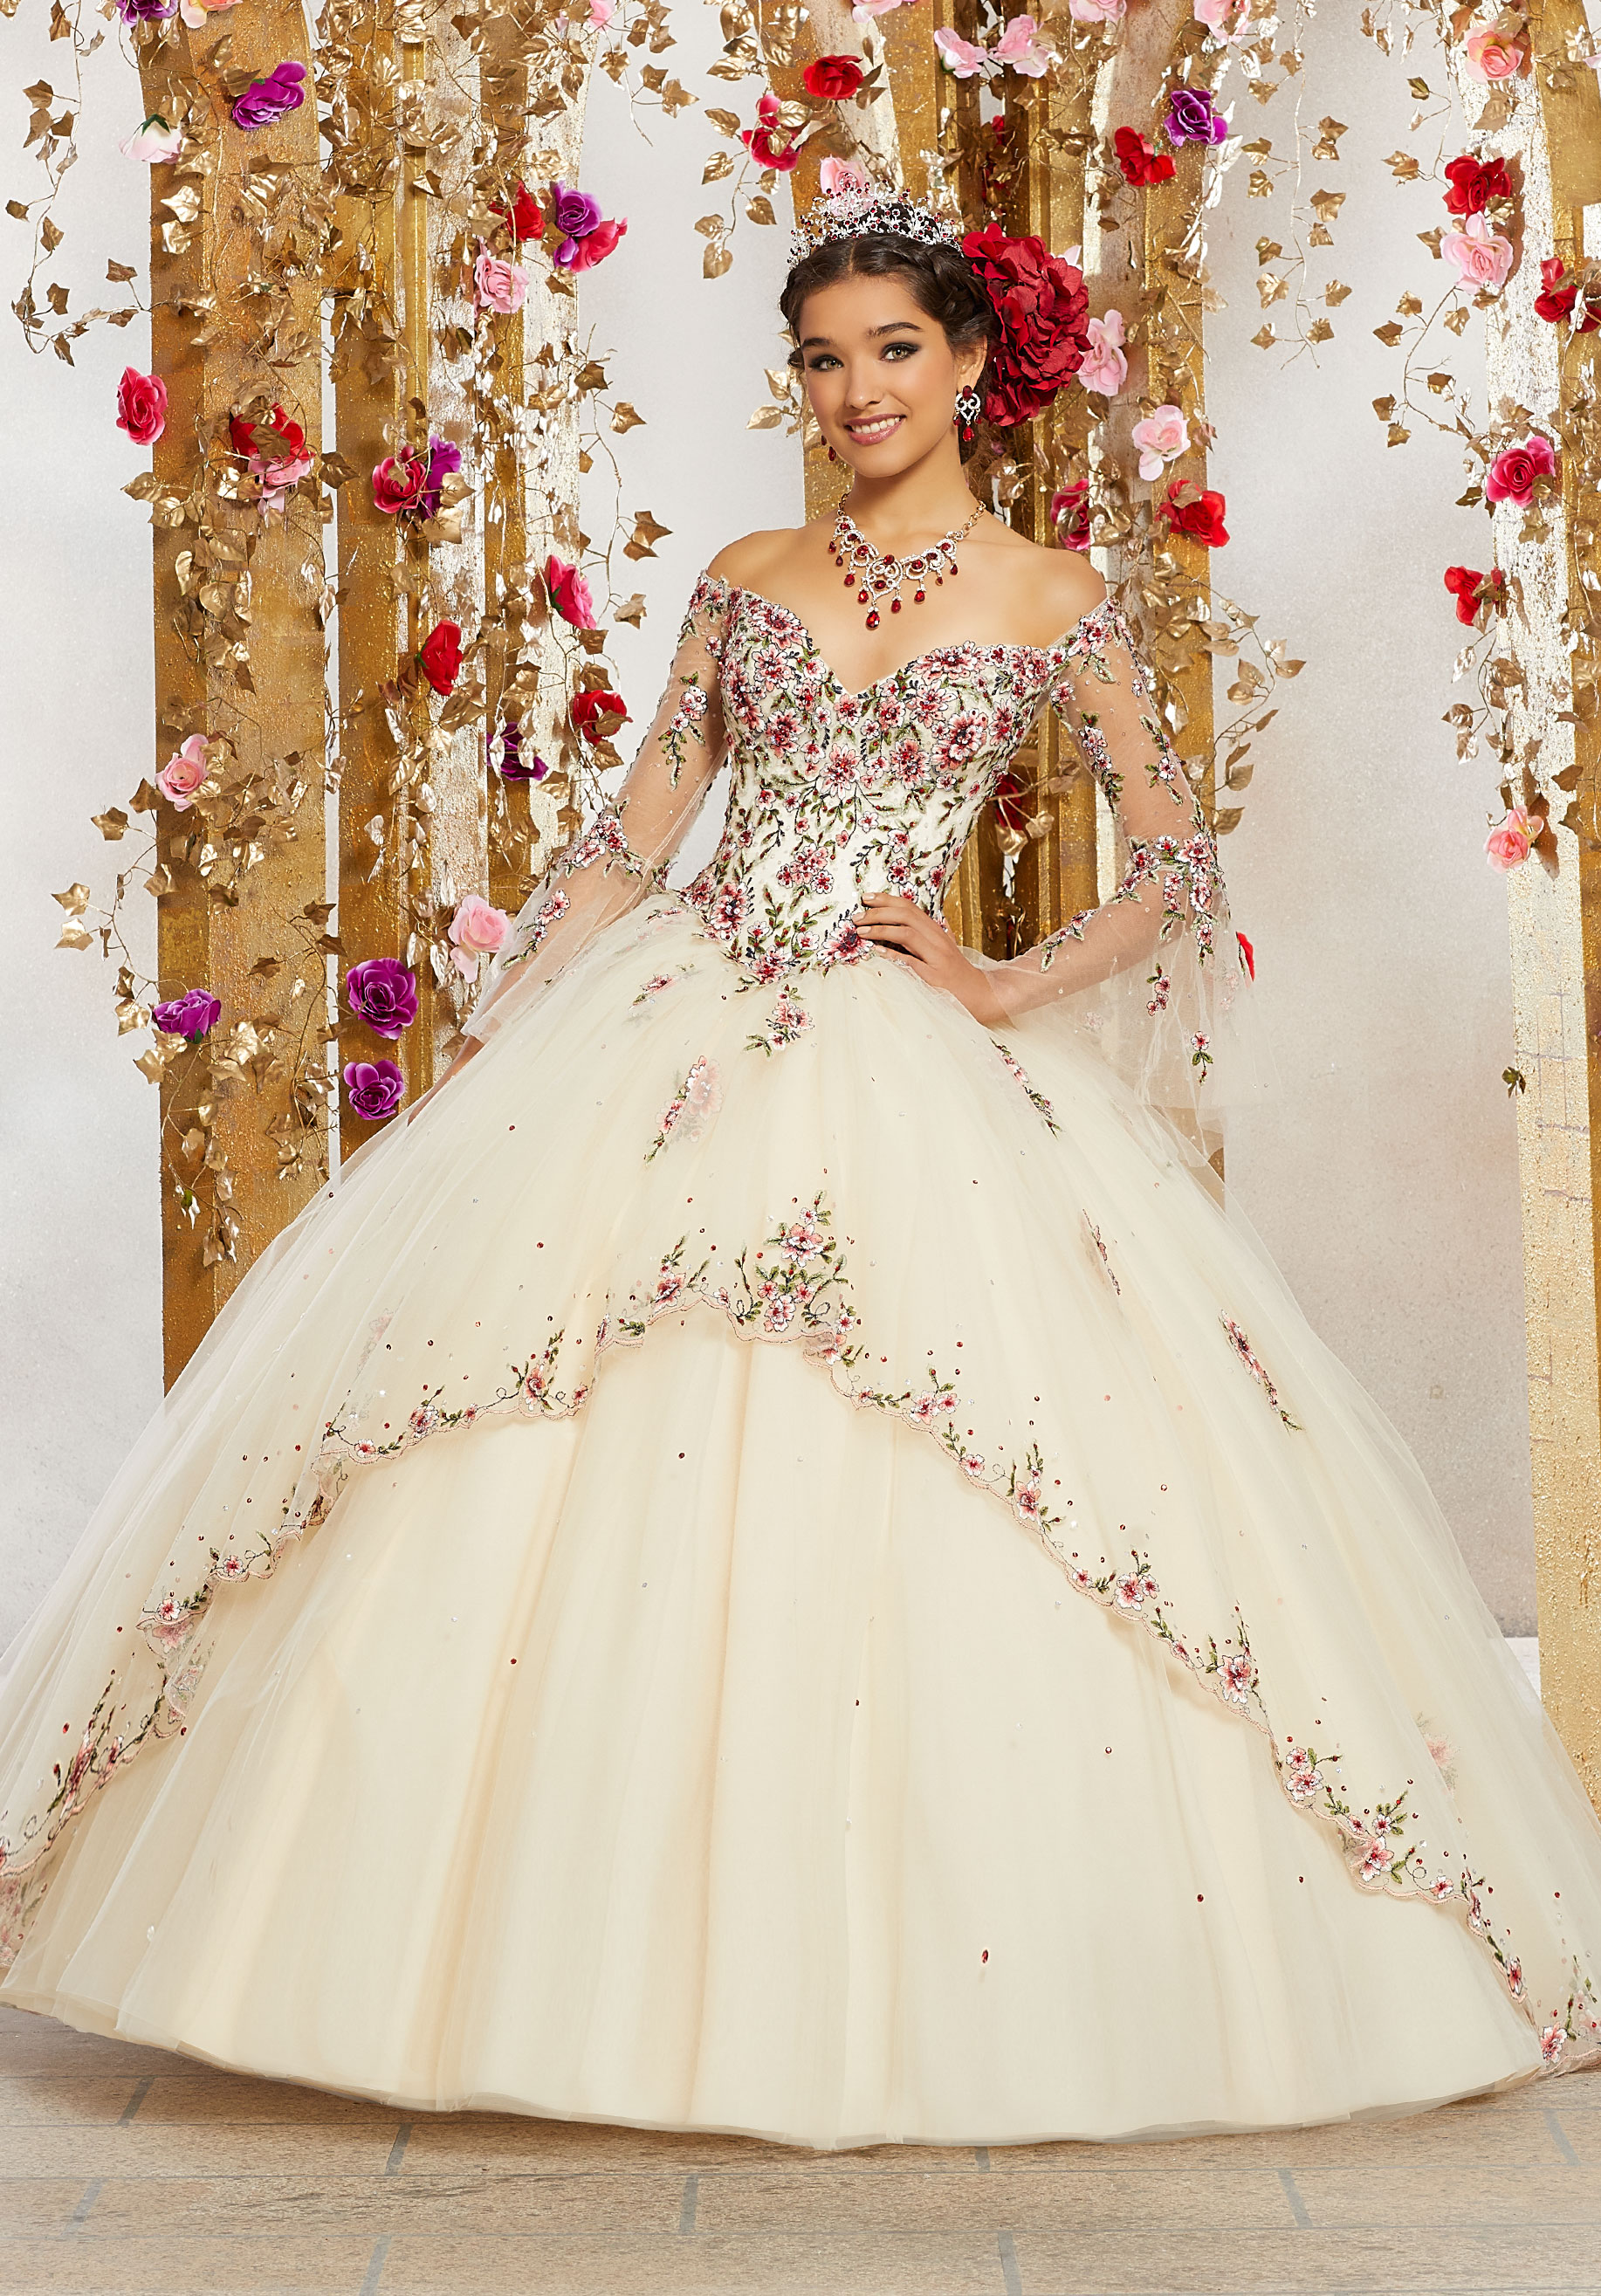 bffd6c2ebf1 Bridal   Quince Dresses